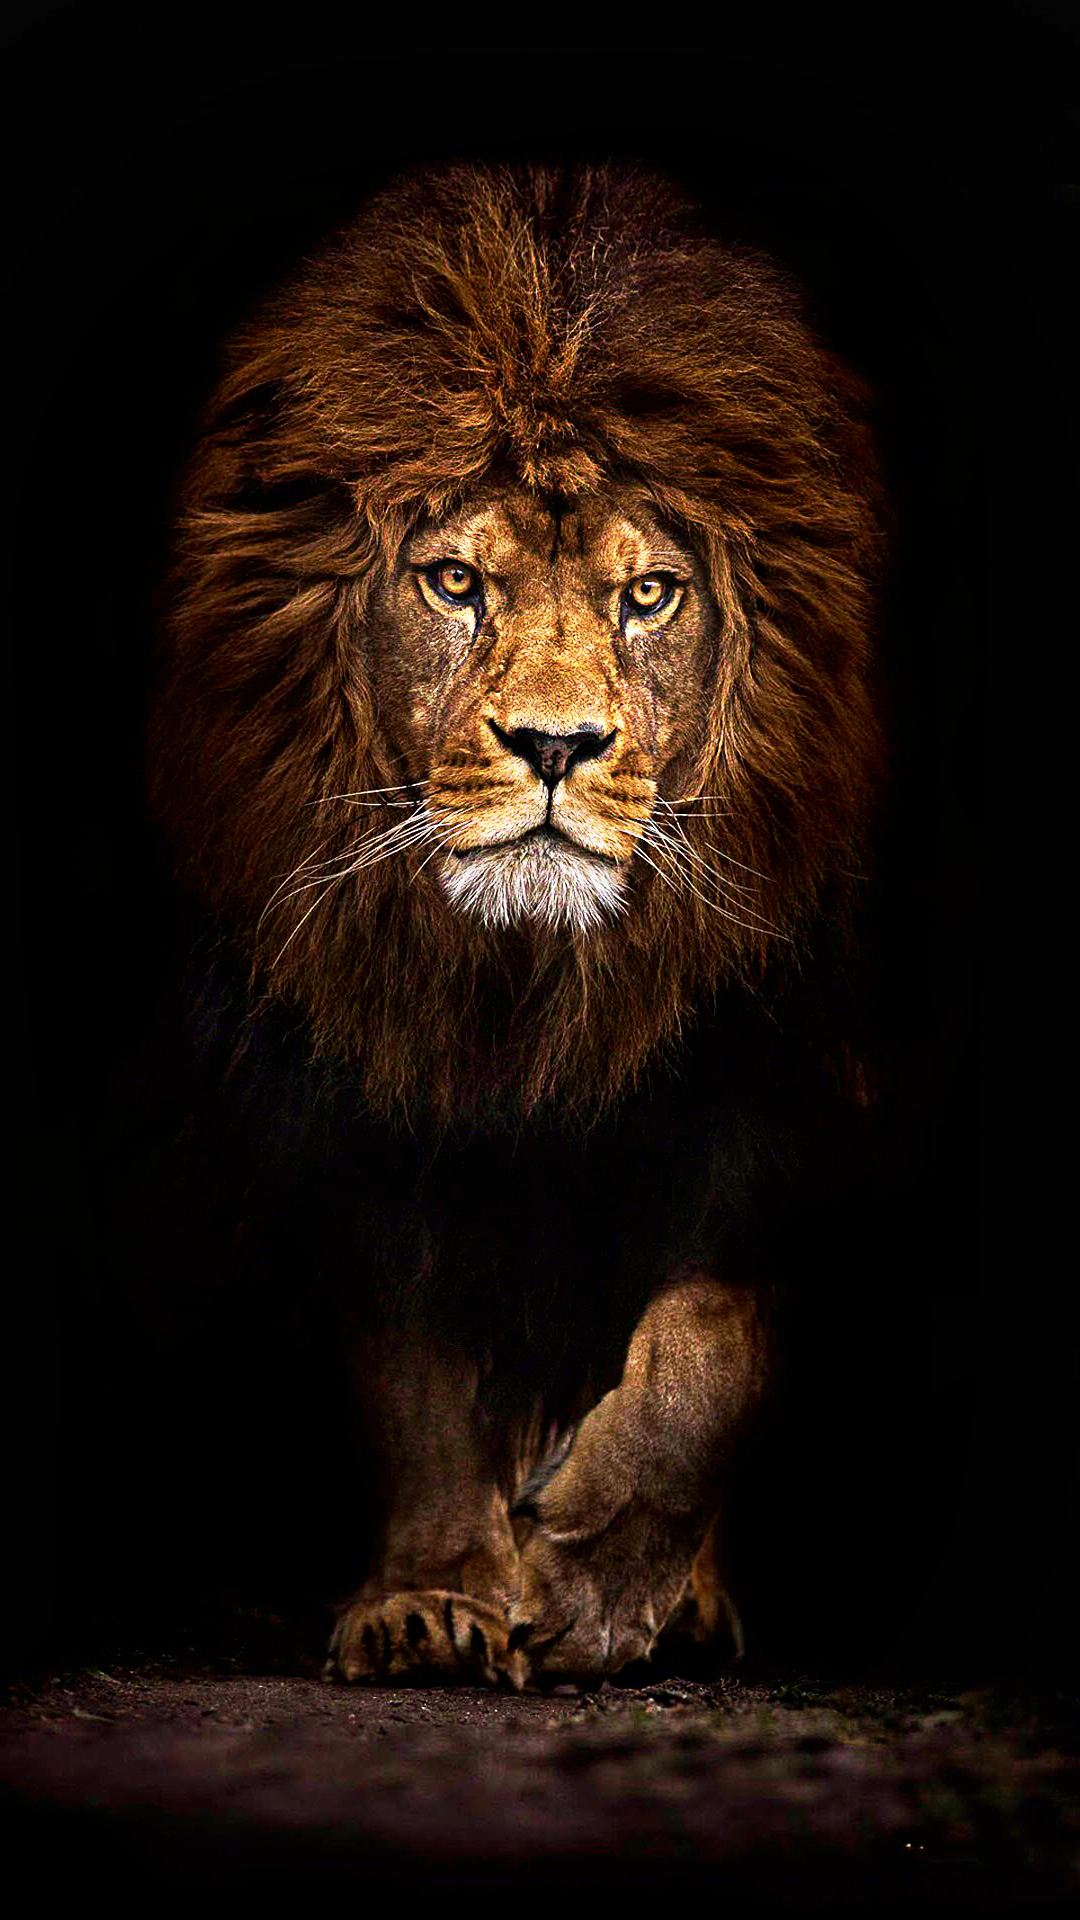 Ultra Hd Mufasa Lion Wallpaper For Your Mobile Phone 0463